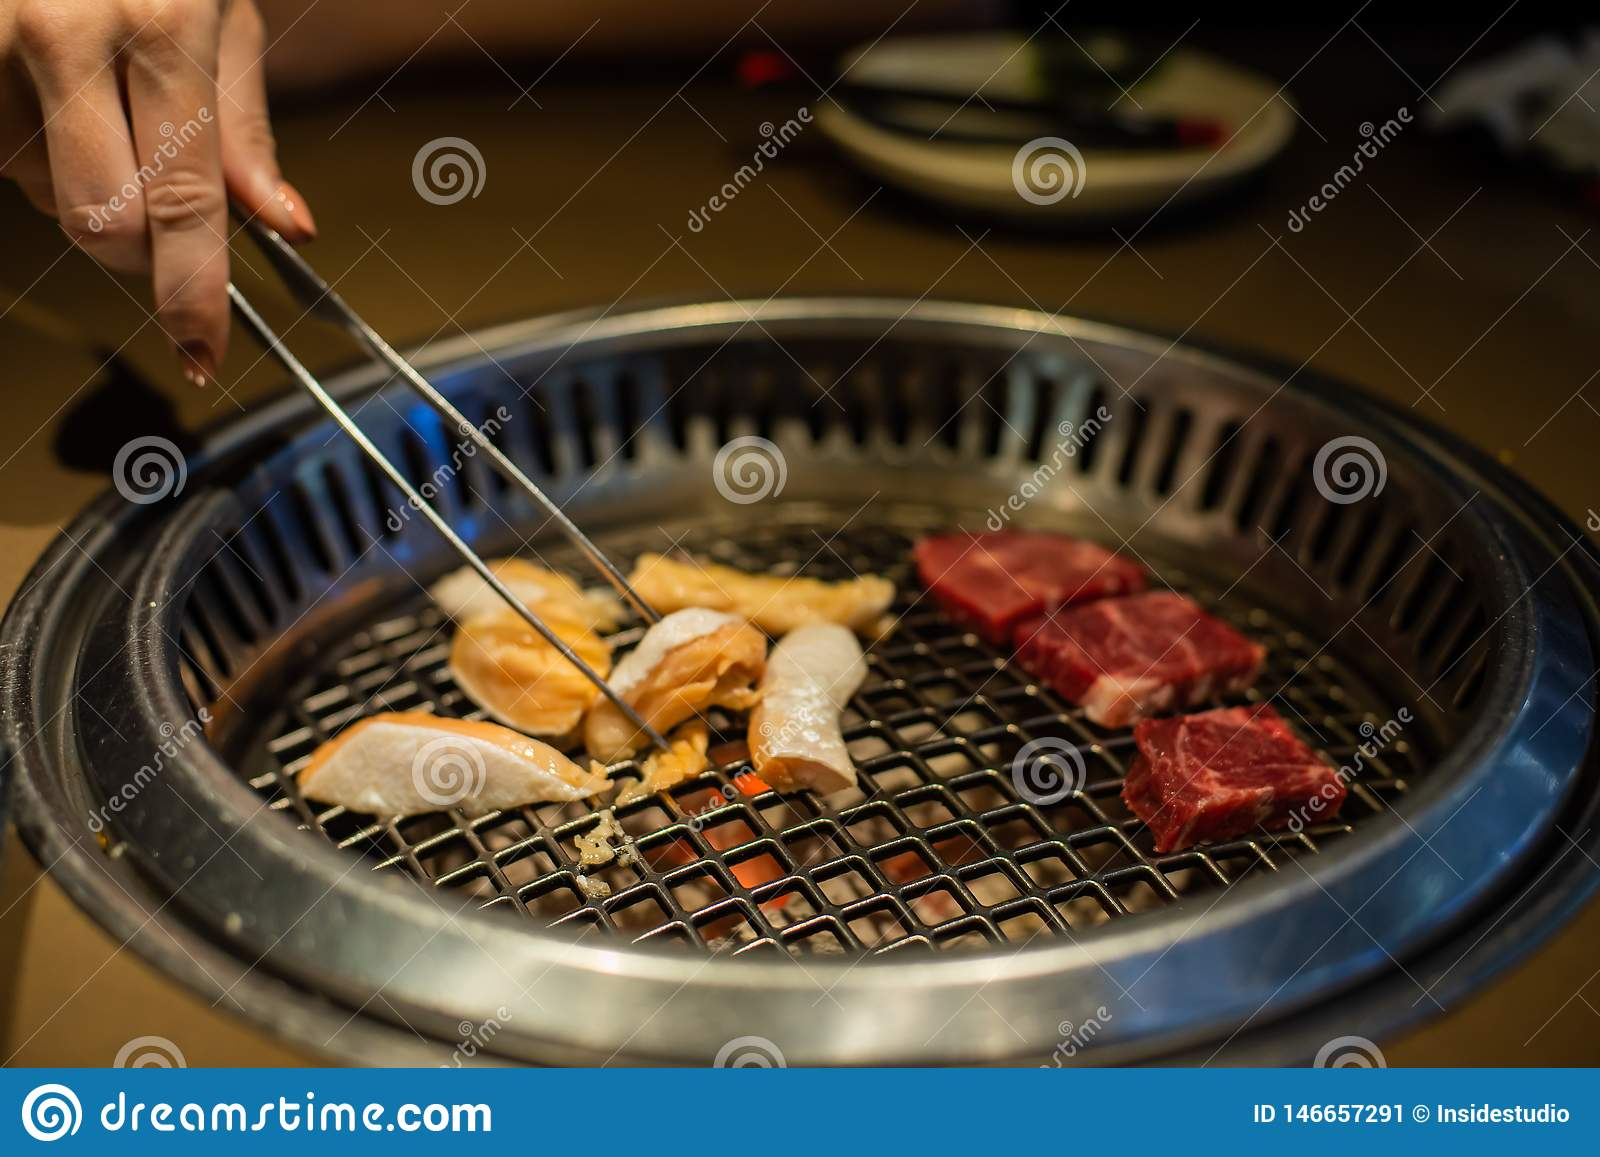 Fresh Meat Grilling Meat In A Korean Restaurant Traditional Korean Food Stock Image Image Of Grilling Dish 146657291